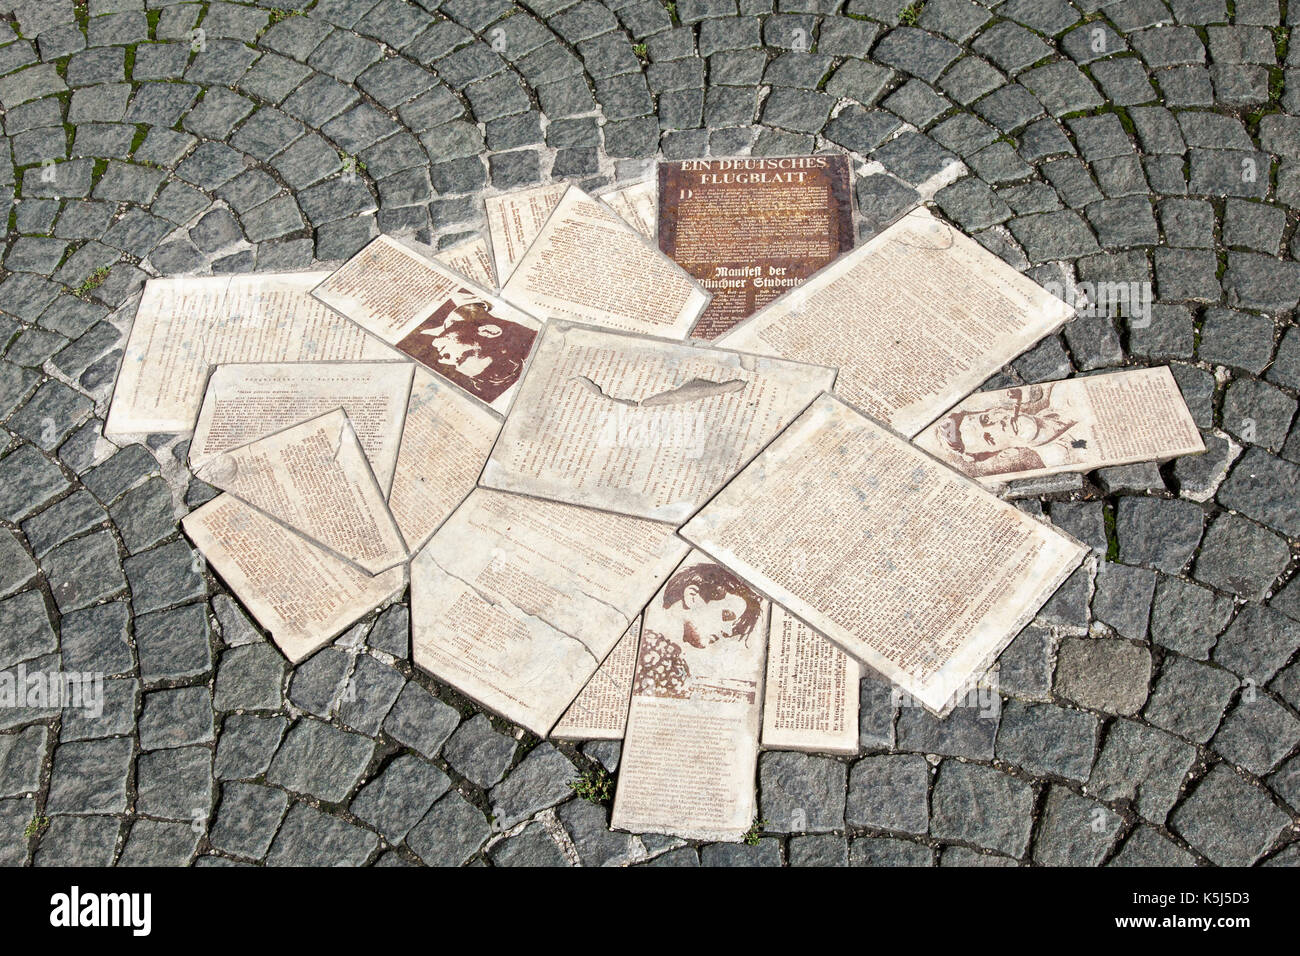 White Rose Pavement Memorial, Munich - Stock Image